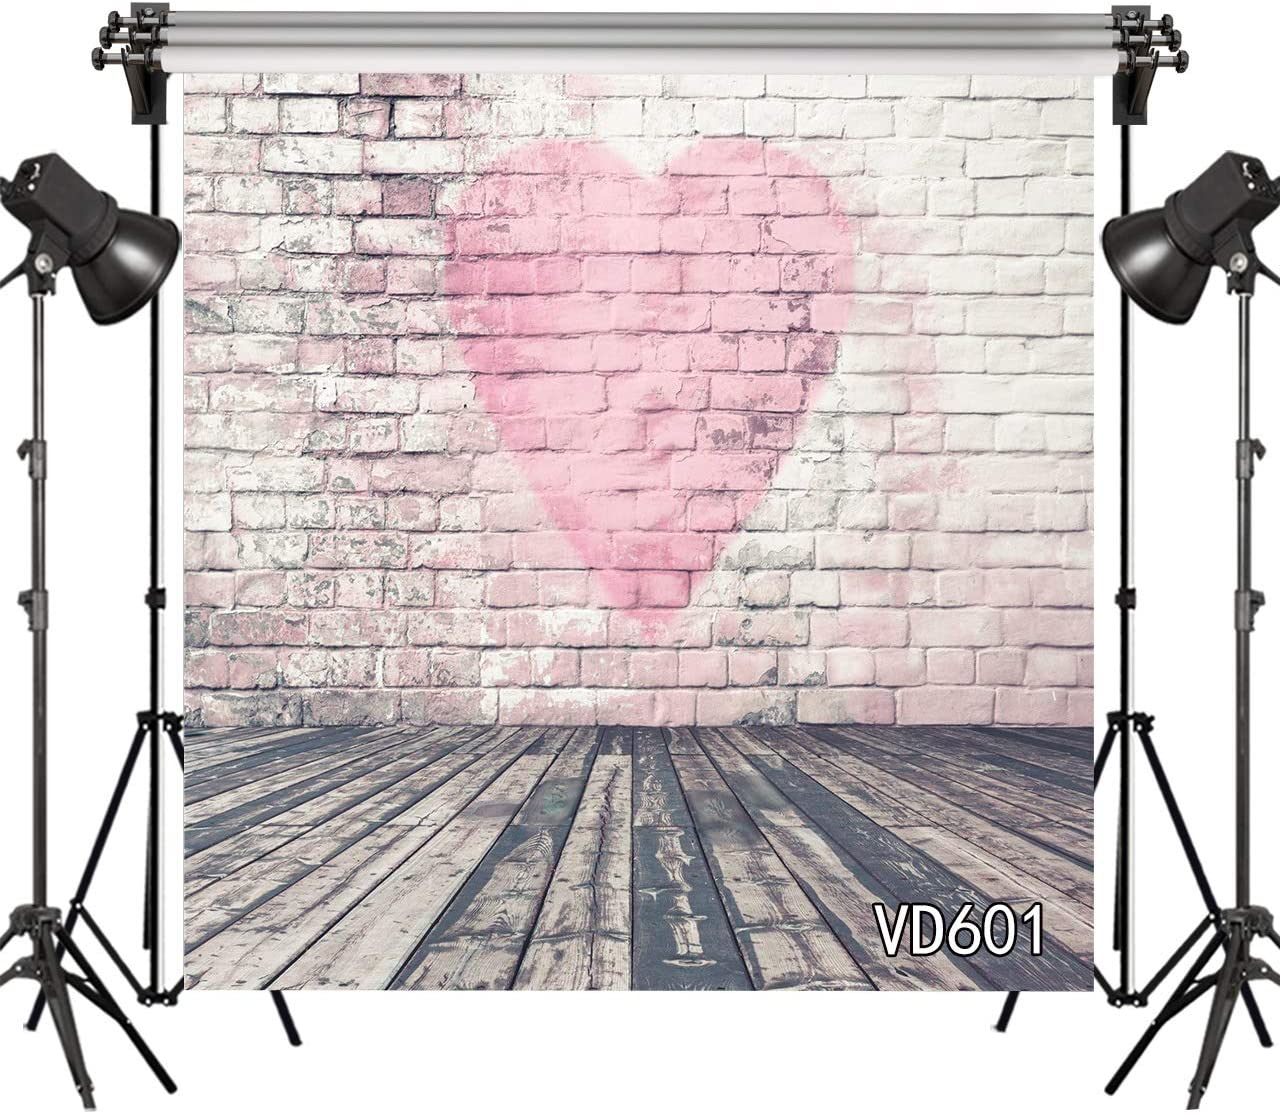 LB Rustic Wood Floor Valentines Day Backdrops 10x10ft Vinyl Pink Love Heart on The Brick Wall Photo Backdrops Customized 80s 90s Photo Background Studio Props